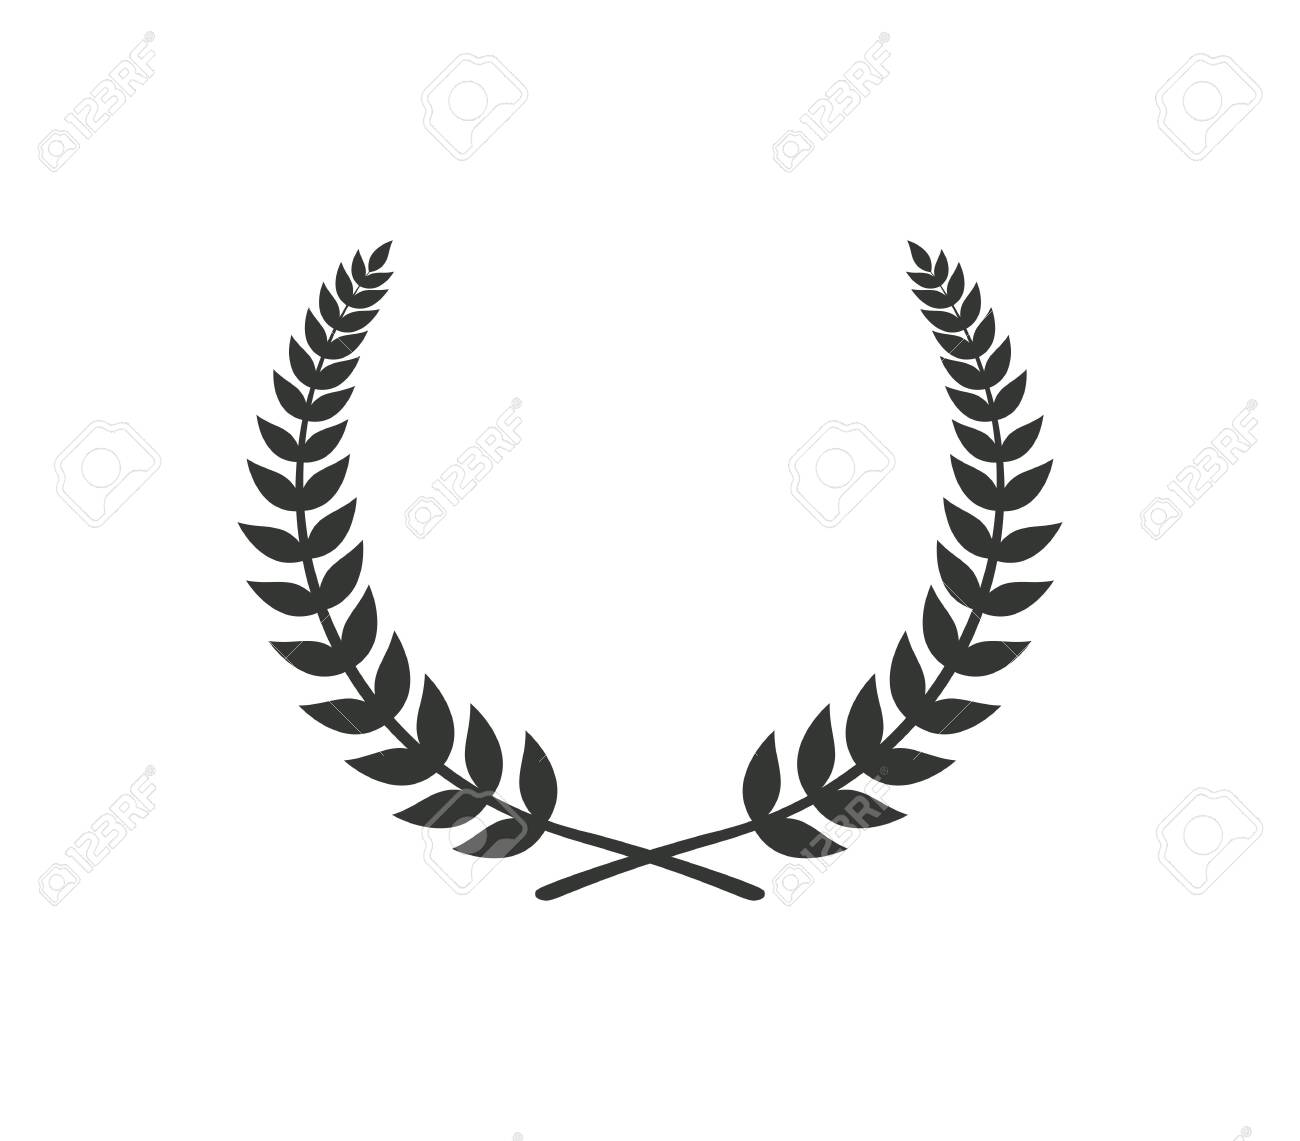 Black Wreath Sign Isolated Vector Illustration Royalty Free Cliparts Vectors And Stock Illustration Image 138260749